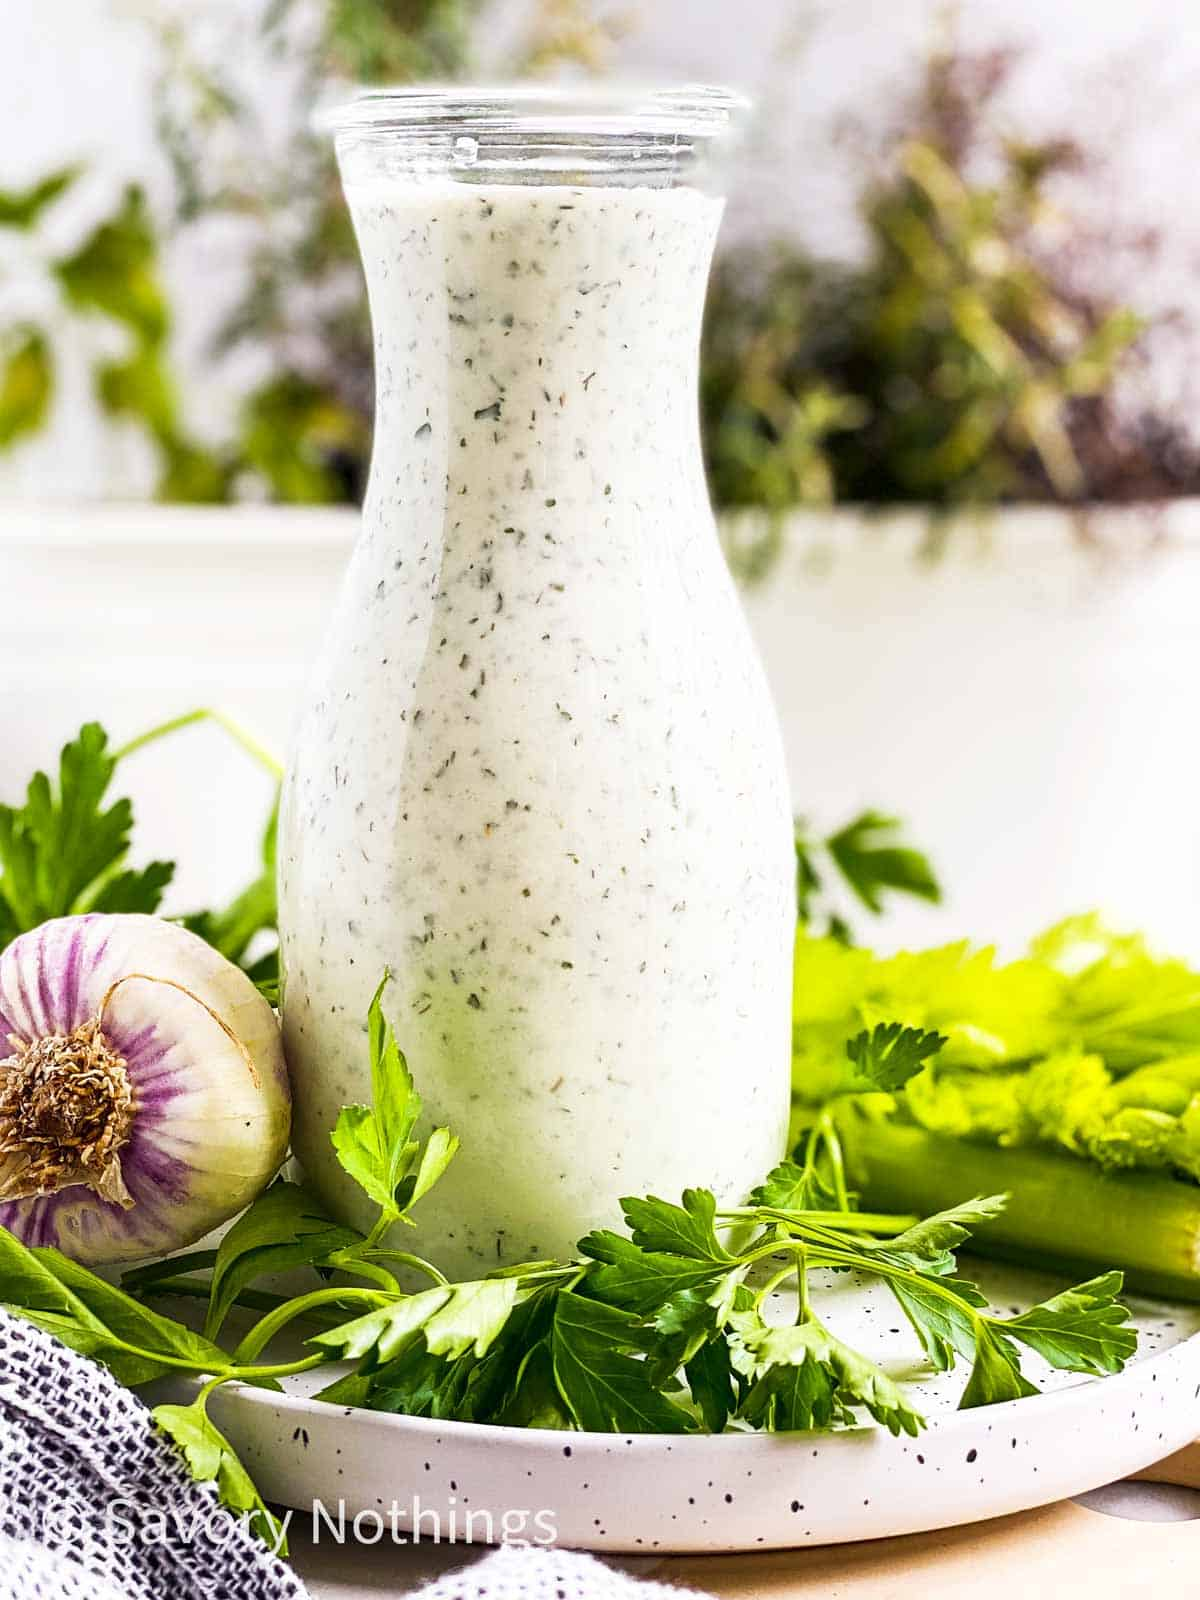 homemade ranch salad dressing in glass bottle on plate with fresh herbs and garlic